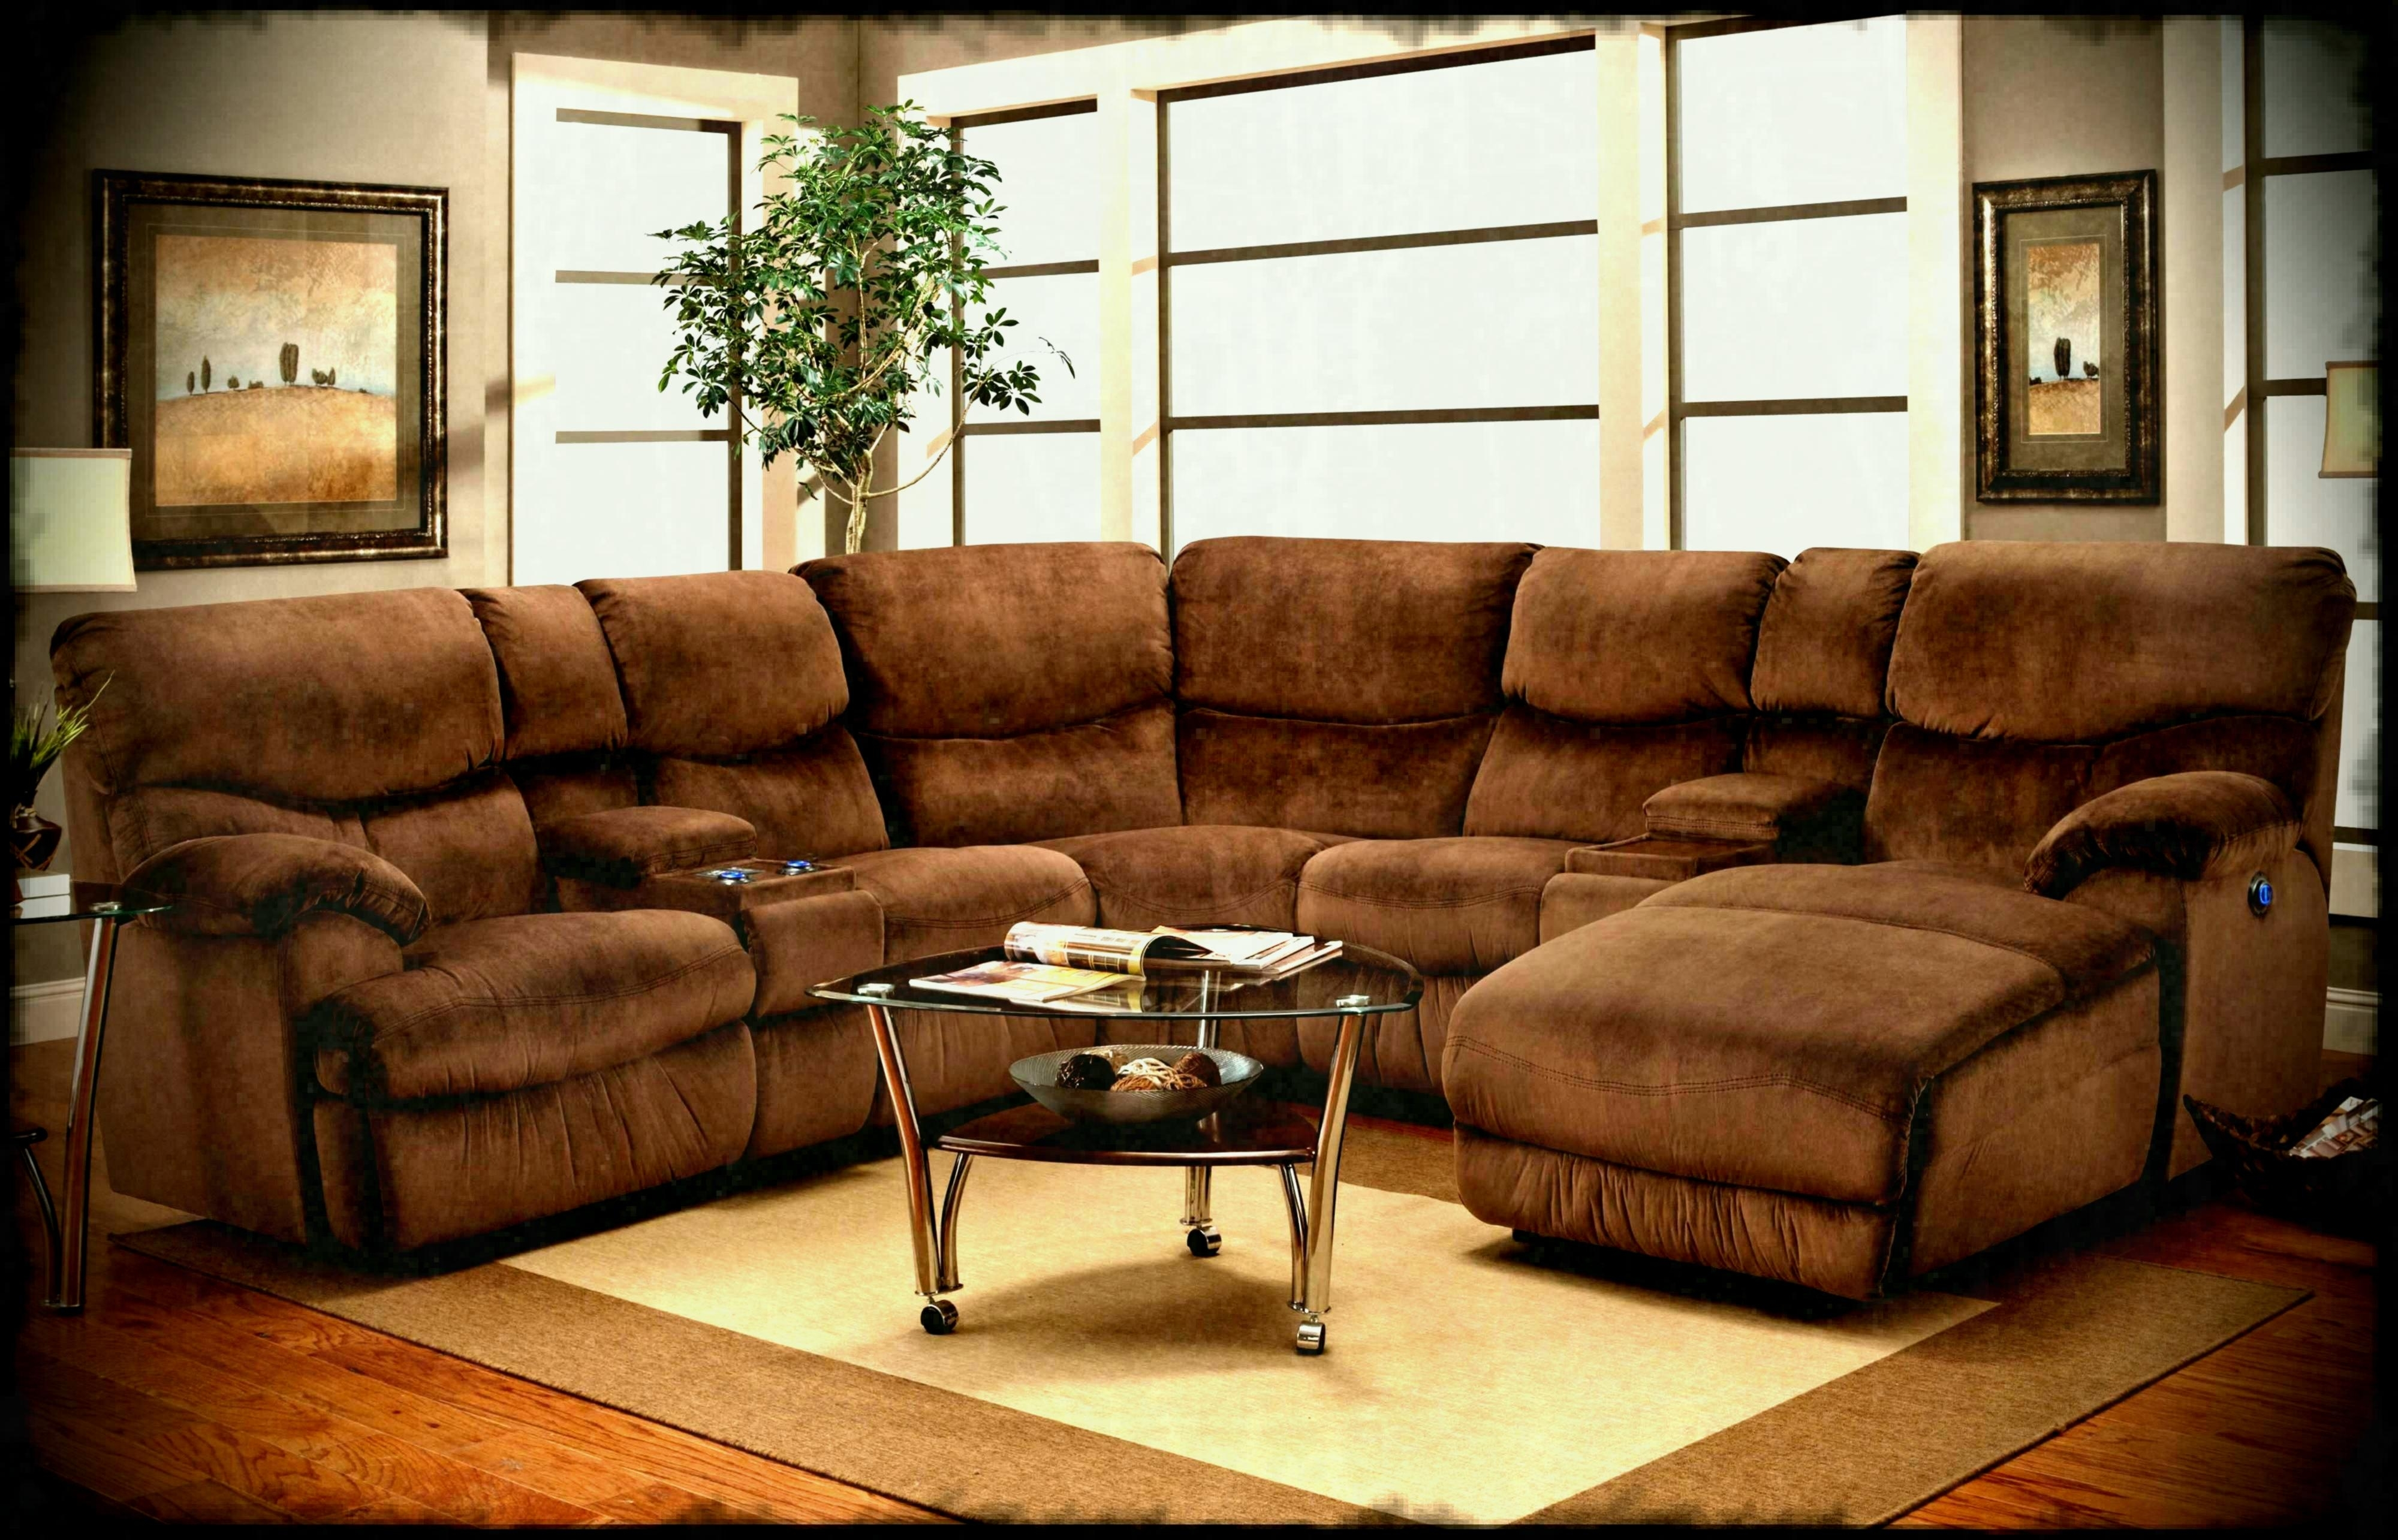 Navy Blue Sectional Sofas Cheap Plus Table Lamp And Bookcase For With Tallahassee Sectional Sofas (Image 10 of 10)